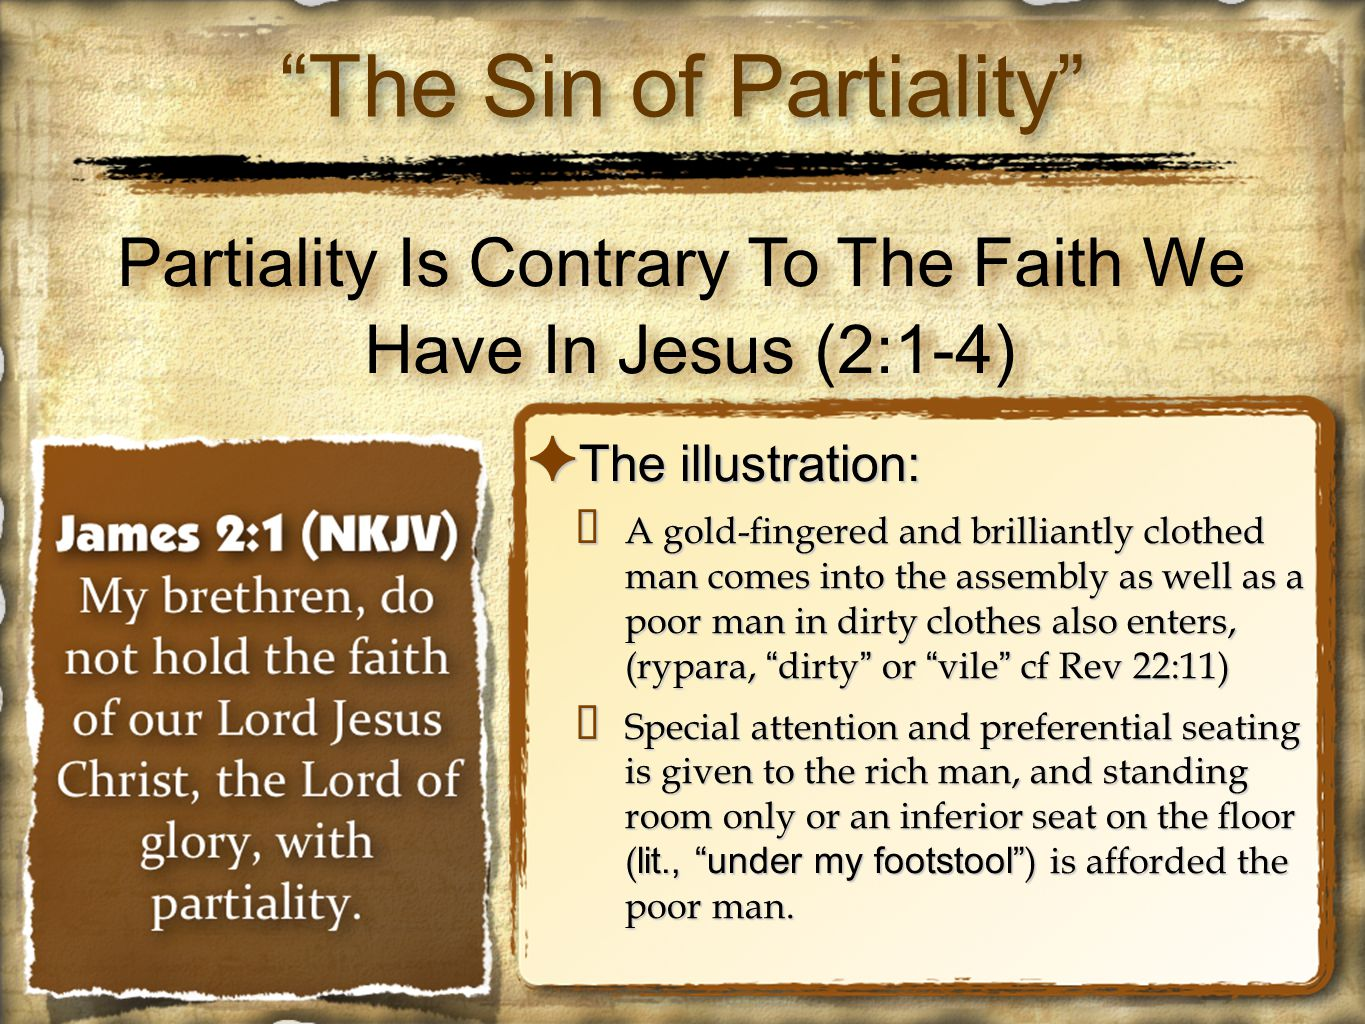 Partiality Is Contrary To The Faith We Have In Jesus (2:1-4) ✦ The illustration: ✴ A gold-fingered and brilliantly clothed man comes into the assembly as well as a poor man in dirty clothes also enters, (rypara, dirty or vile cf Rev 22:11) ✴ Special attention and preferential seating is given to the rich man, and standing room only or an inferior seat on the floor ( lit., under my footstool ) is afforded the poor man.